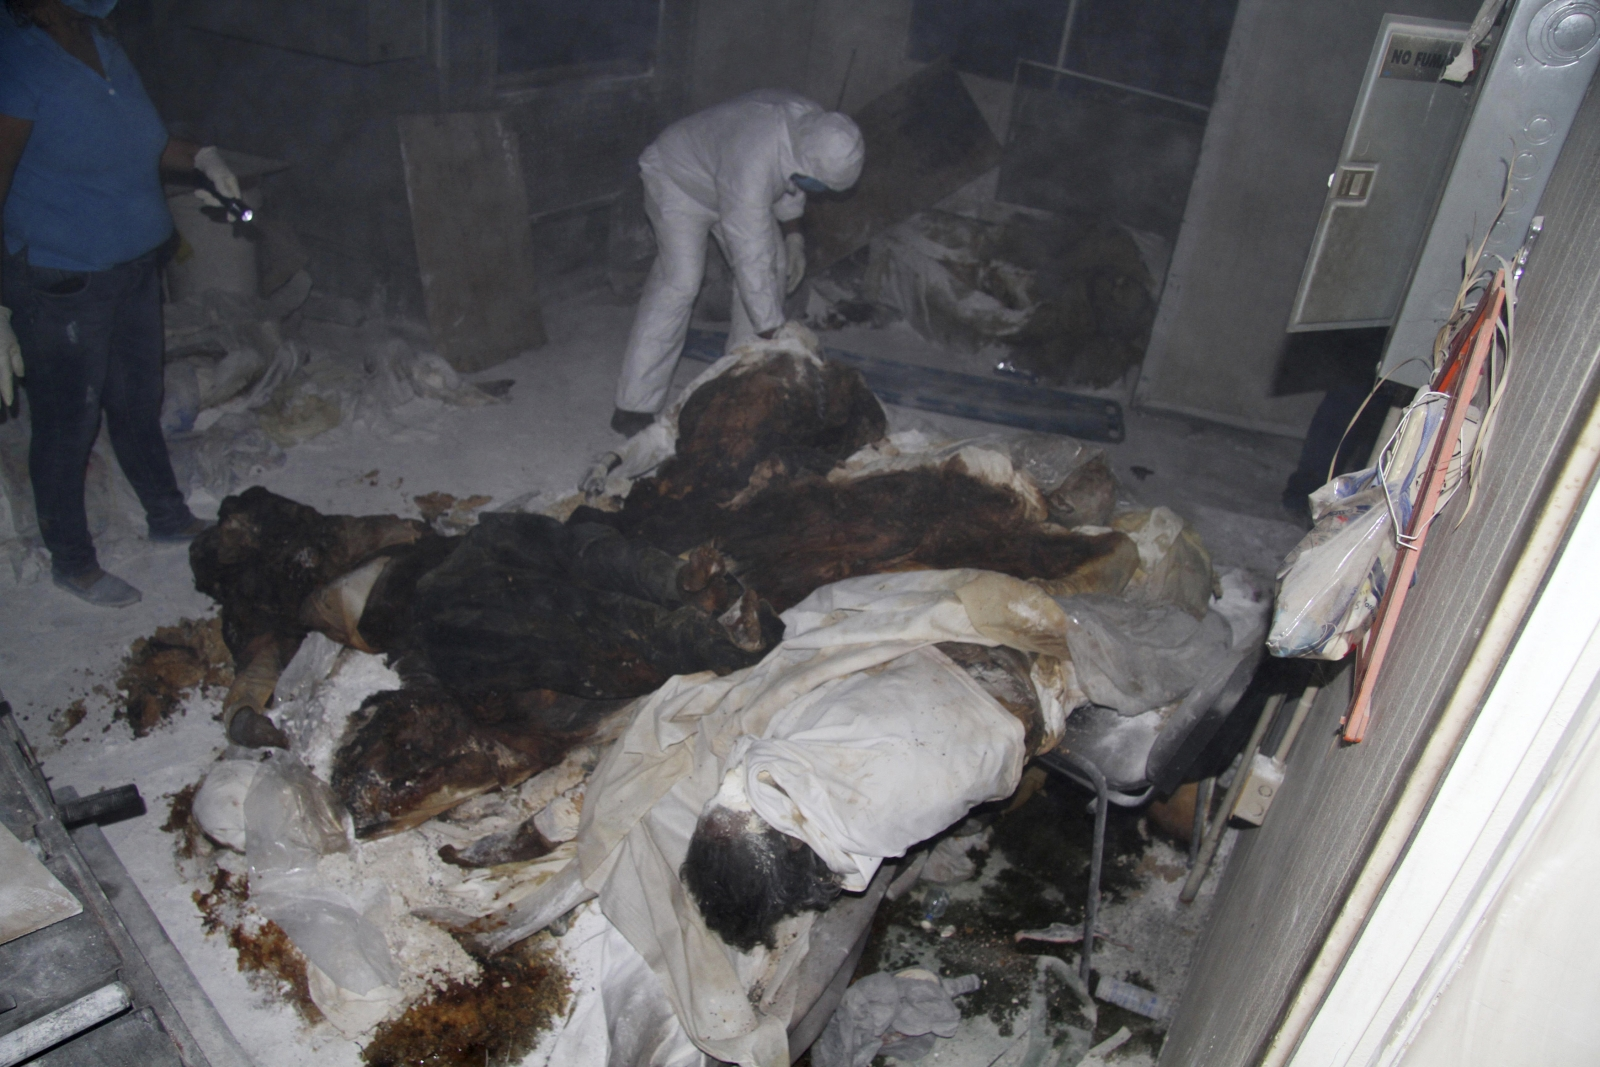 Forensic technicians stand near dead bodies at a crematorium